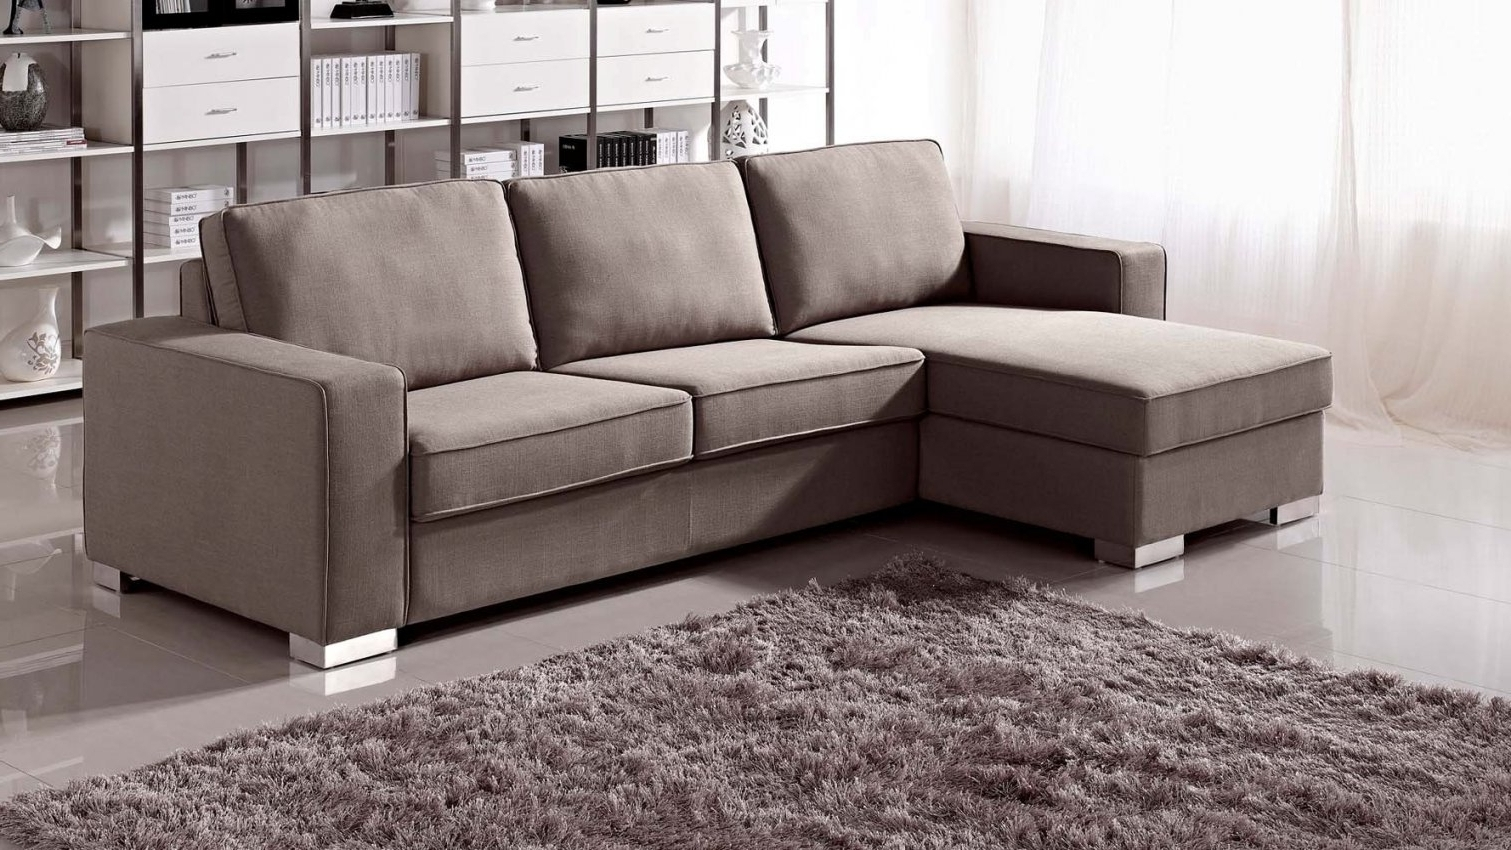 Preferred Sectional Sleeper Sofa With Chaise 29 In Sofa Design Ideas Inside Sleeper Sofa Chaises (View 8 of 15)